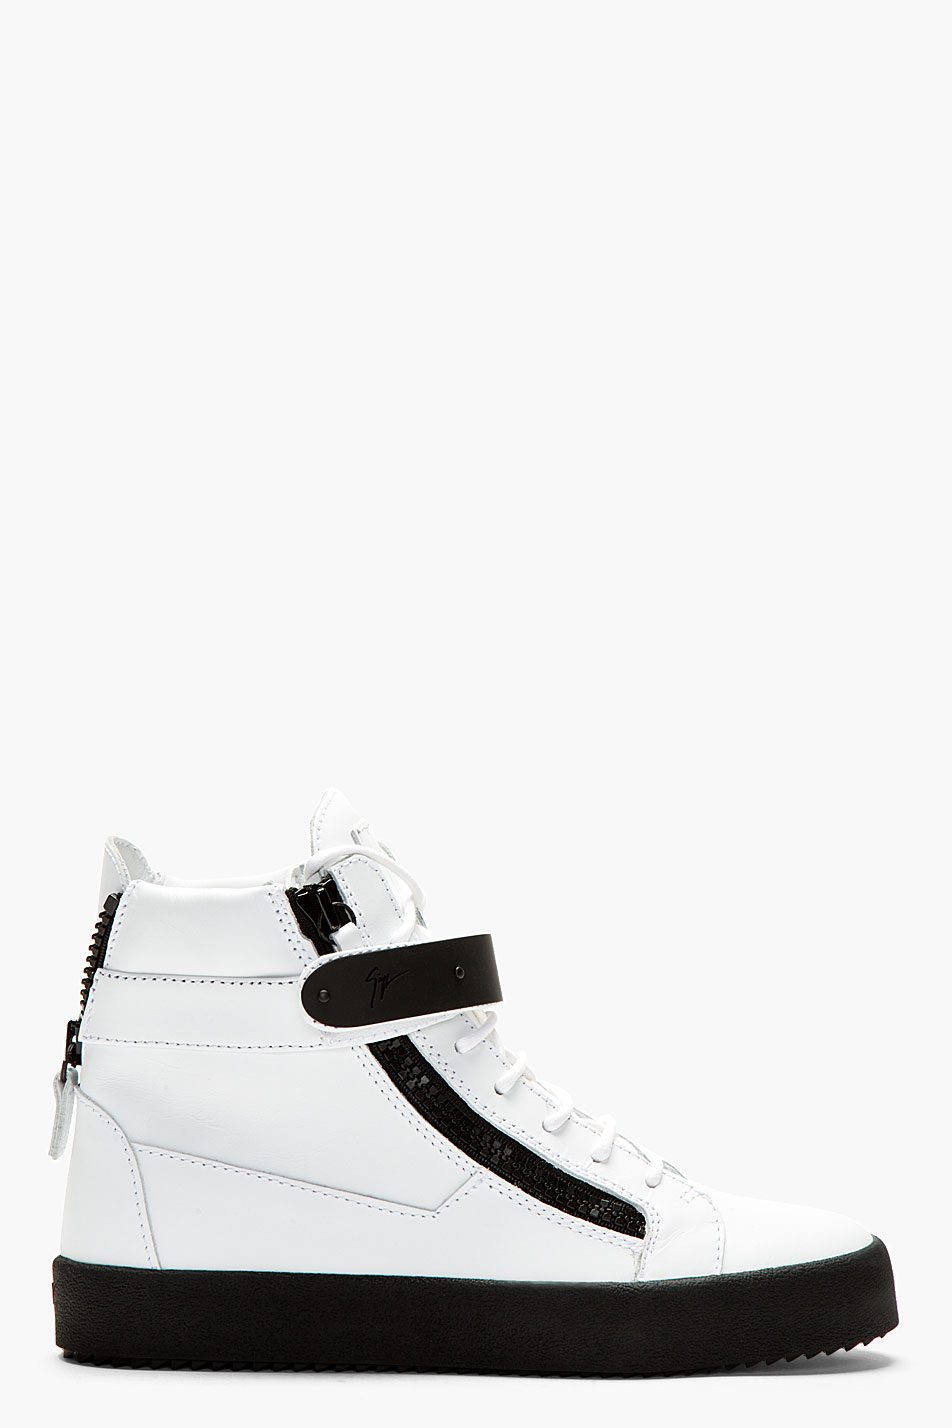 Giuseppe zanotti white matte leather birel wedge sneakers